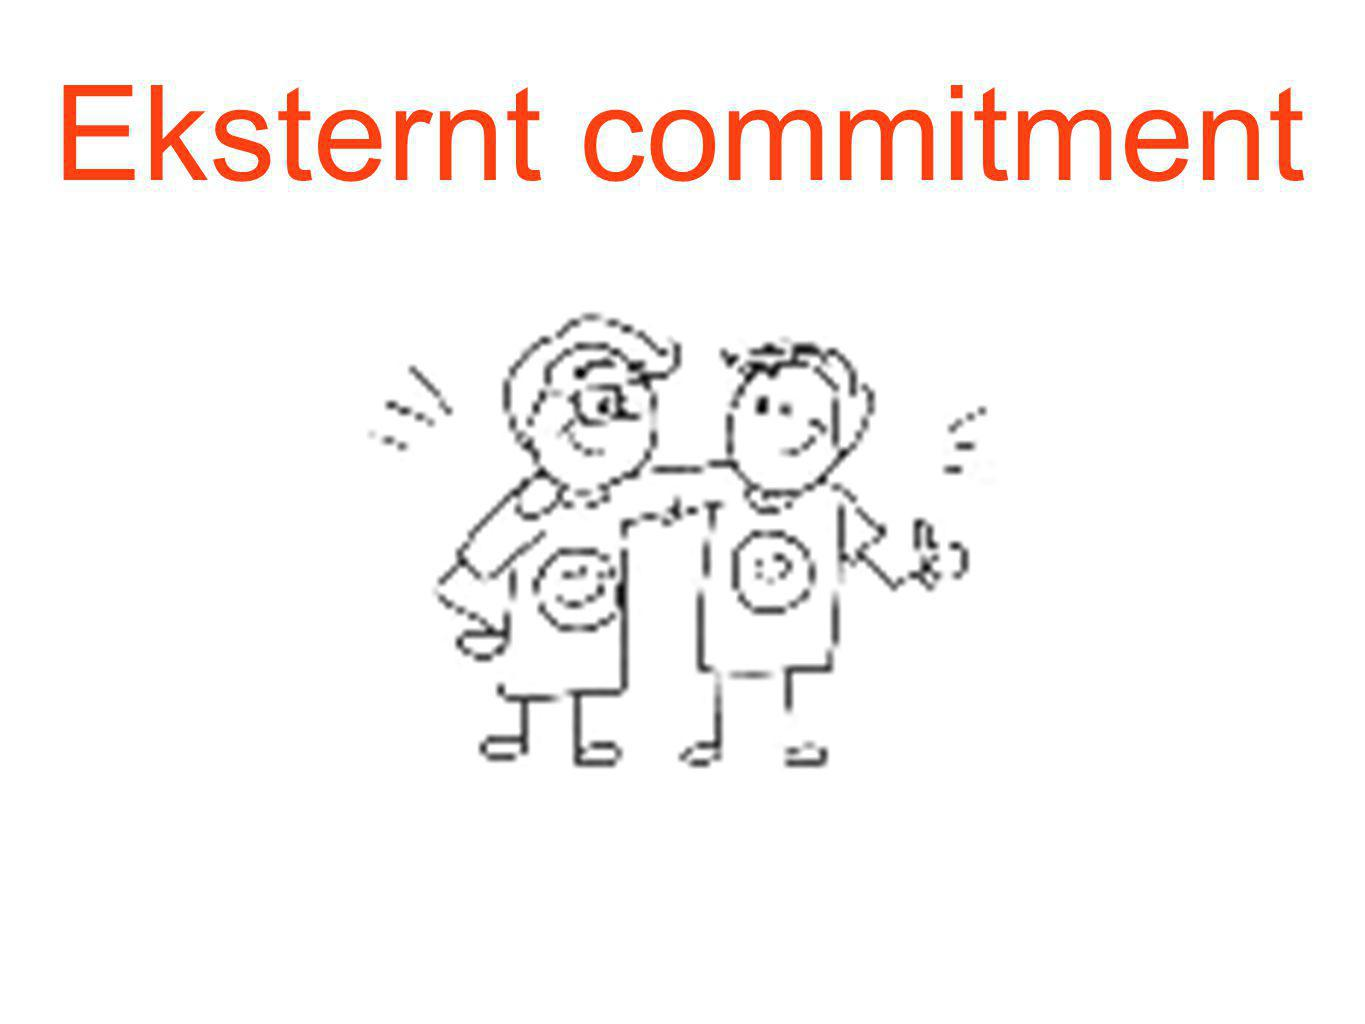 Eksternt commitment